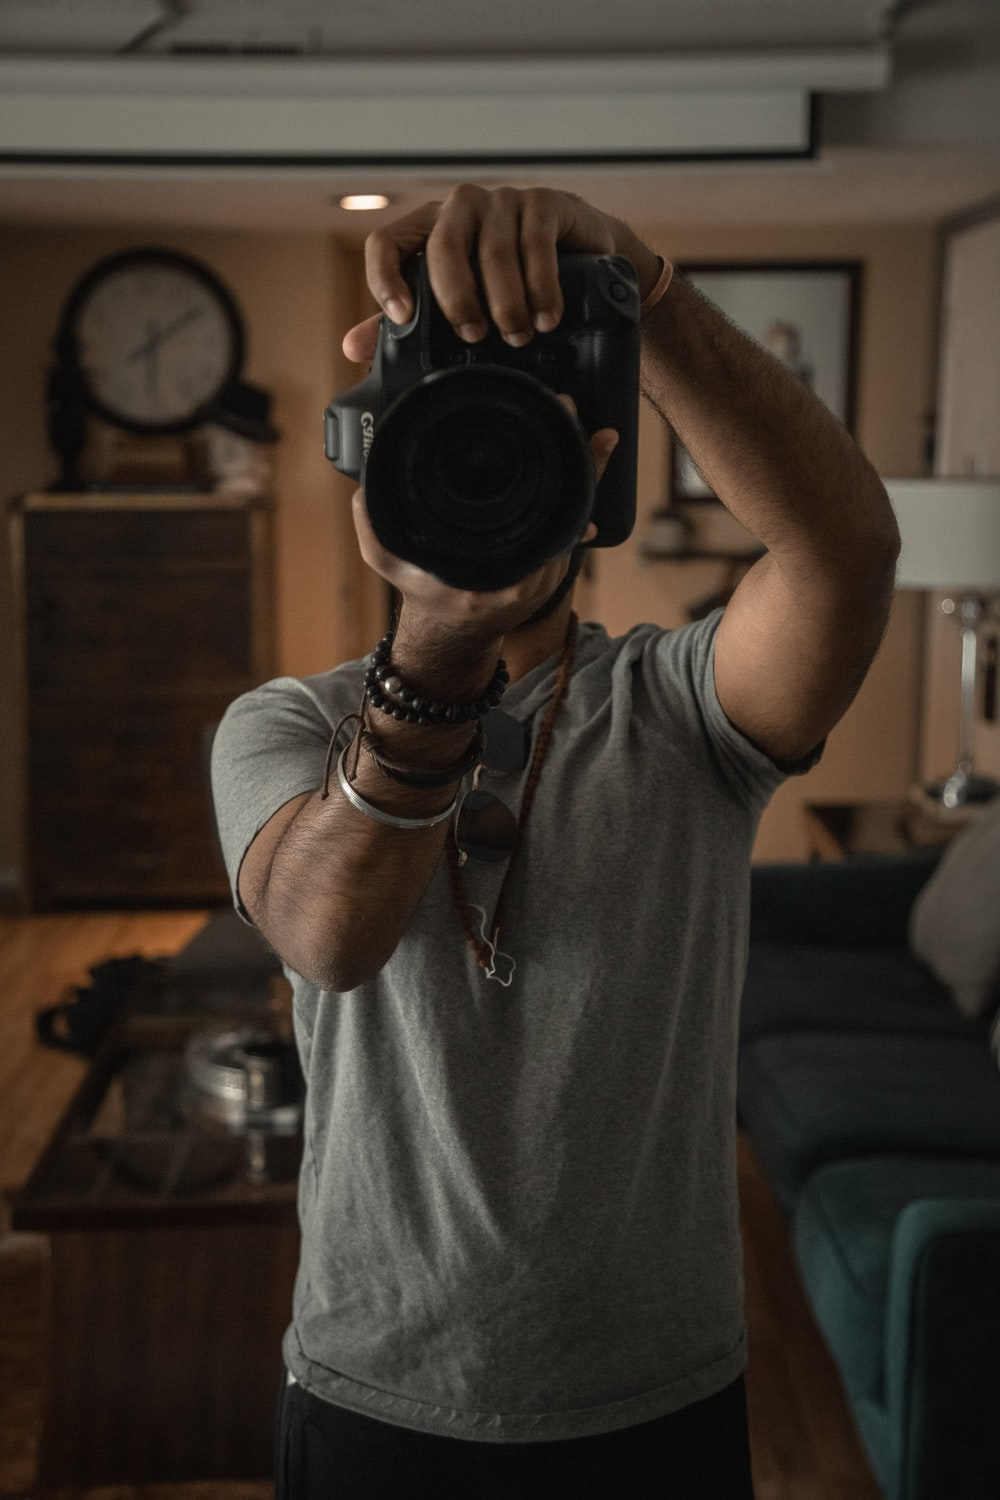 man in grey t-shirt with black DSLR camera